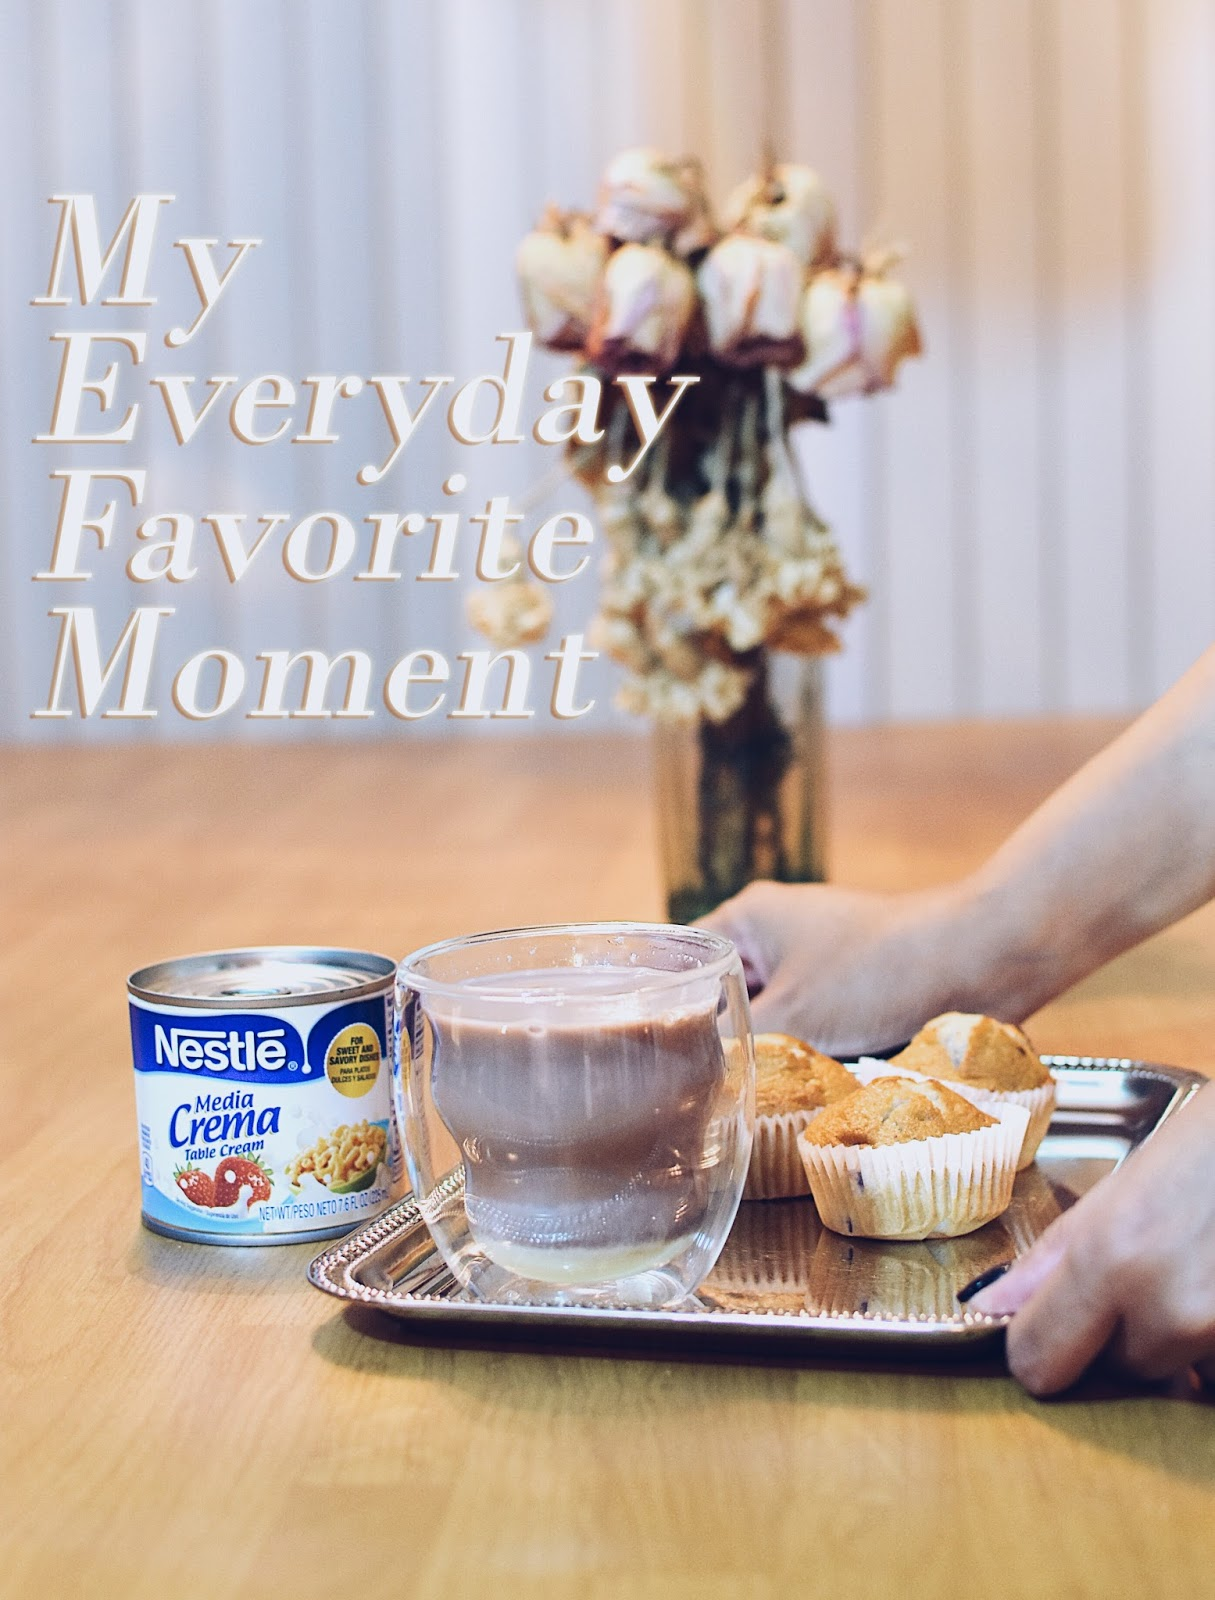 My Everyday Favorite Moment by MariEstilo ft. La Lechera